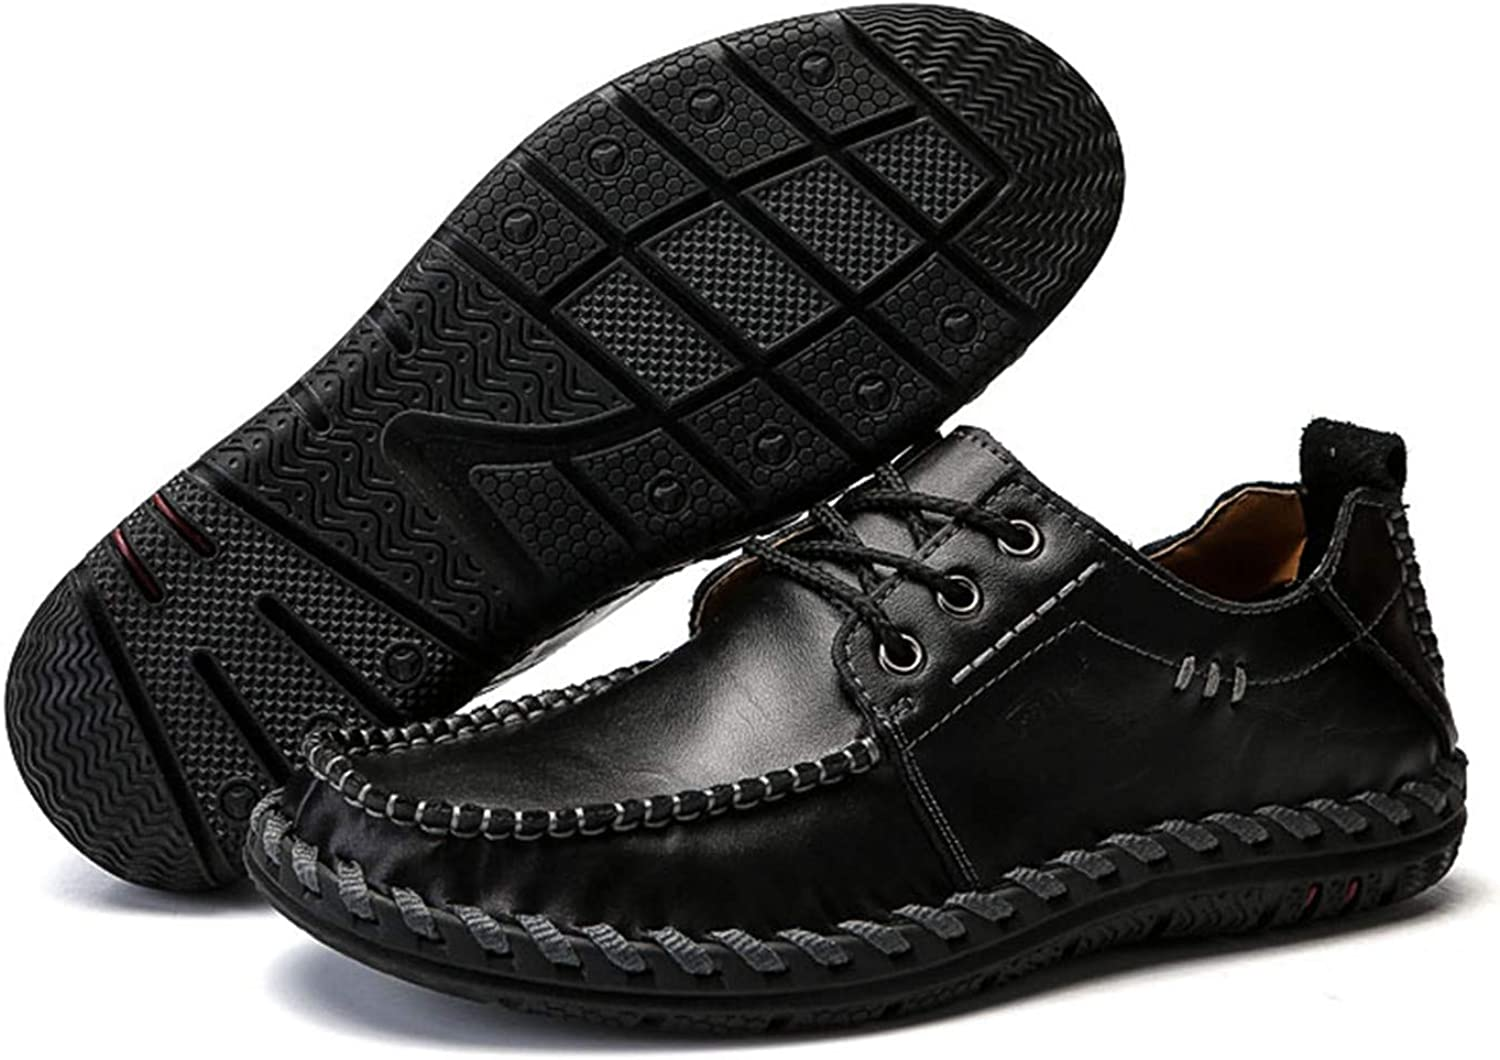 Loafers Men Shoes Casual Male Shoes Lace Men Leather Shoes Designer Leather Flat Shoes Black 8